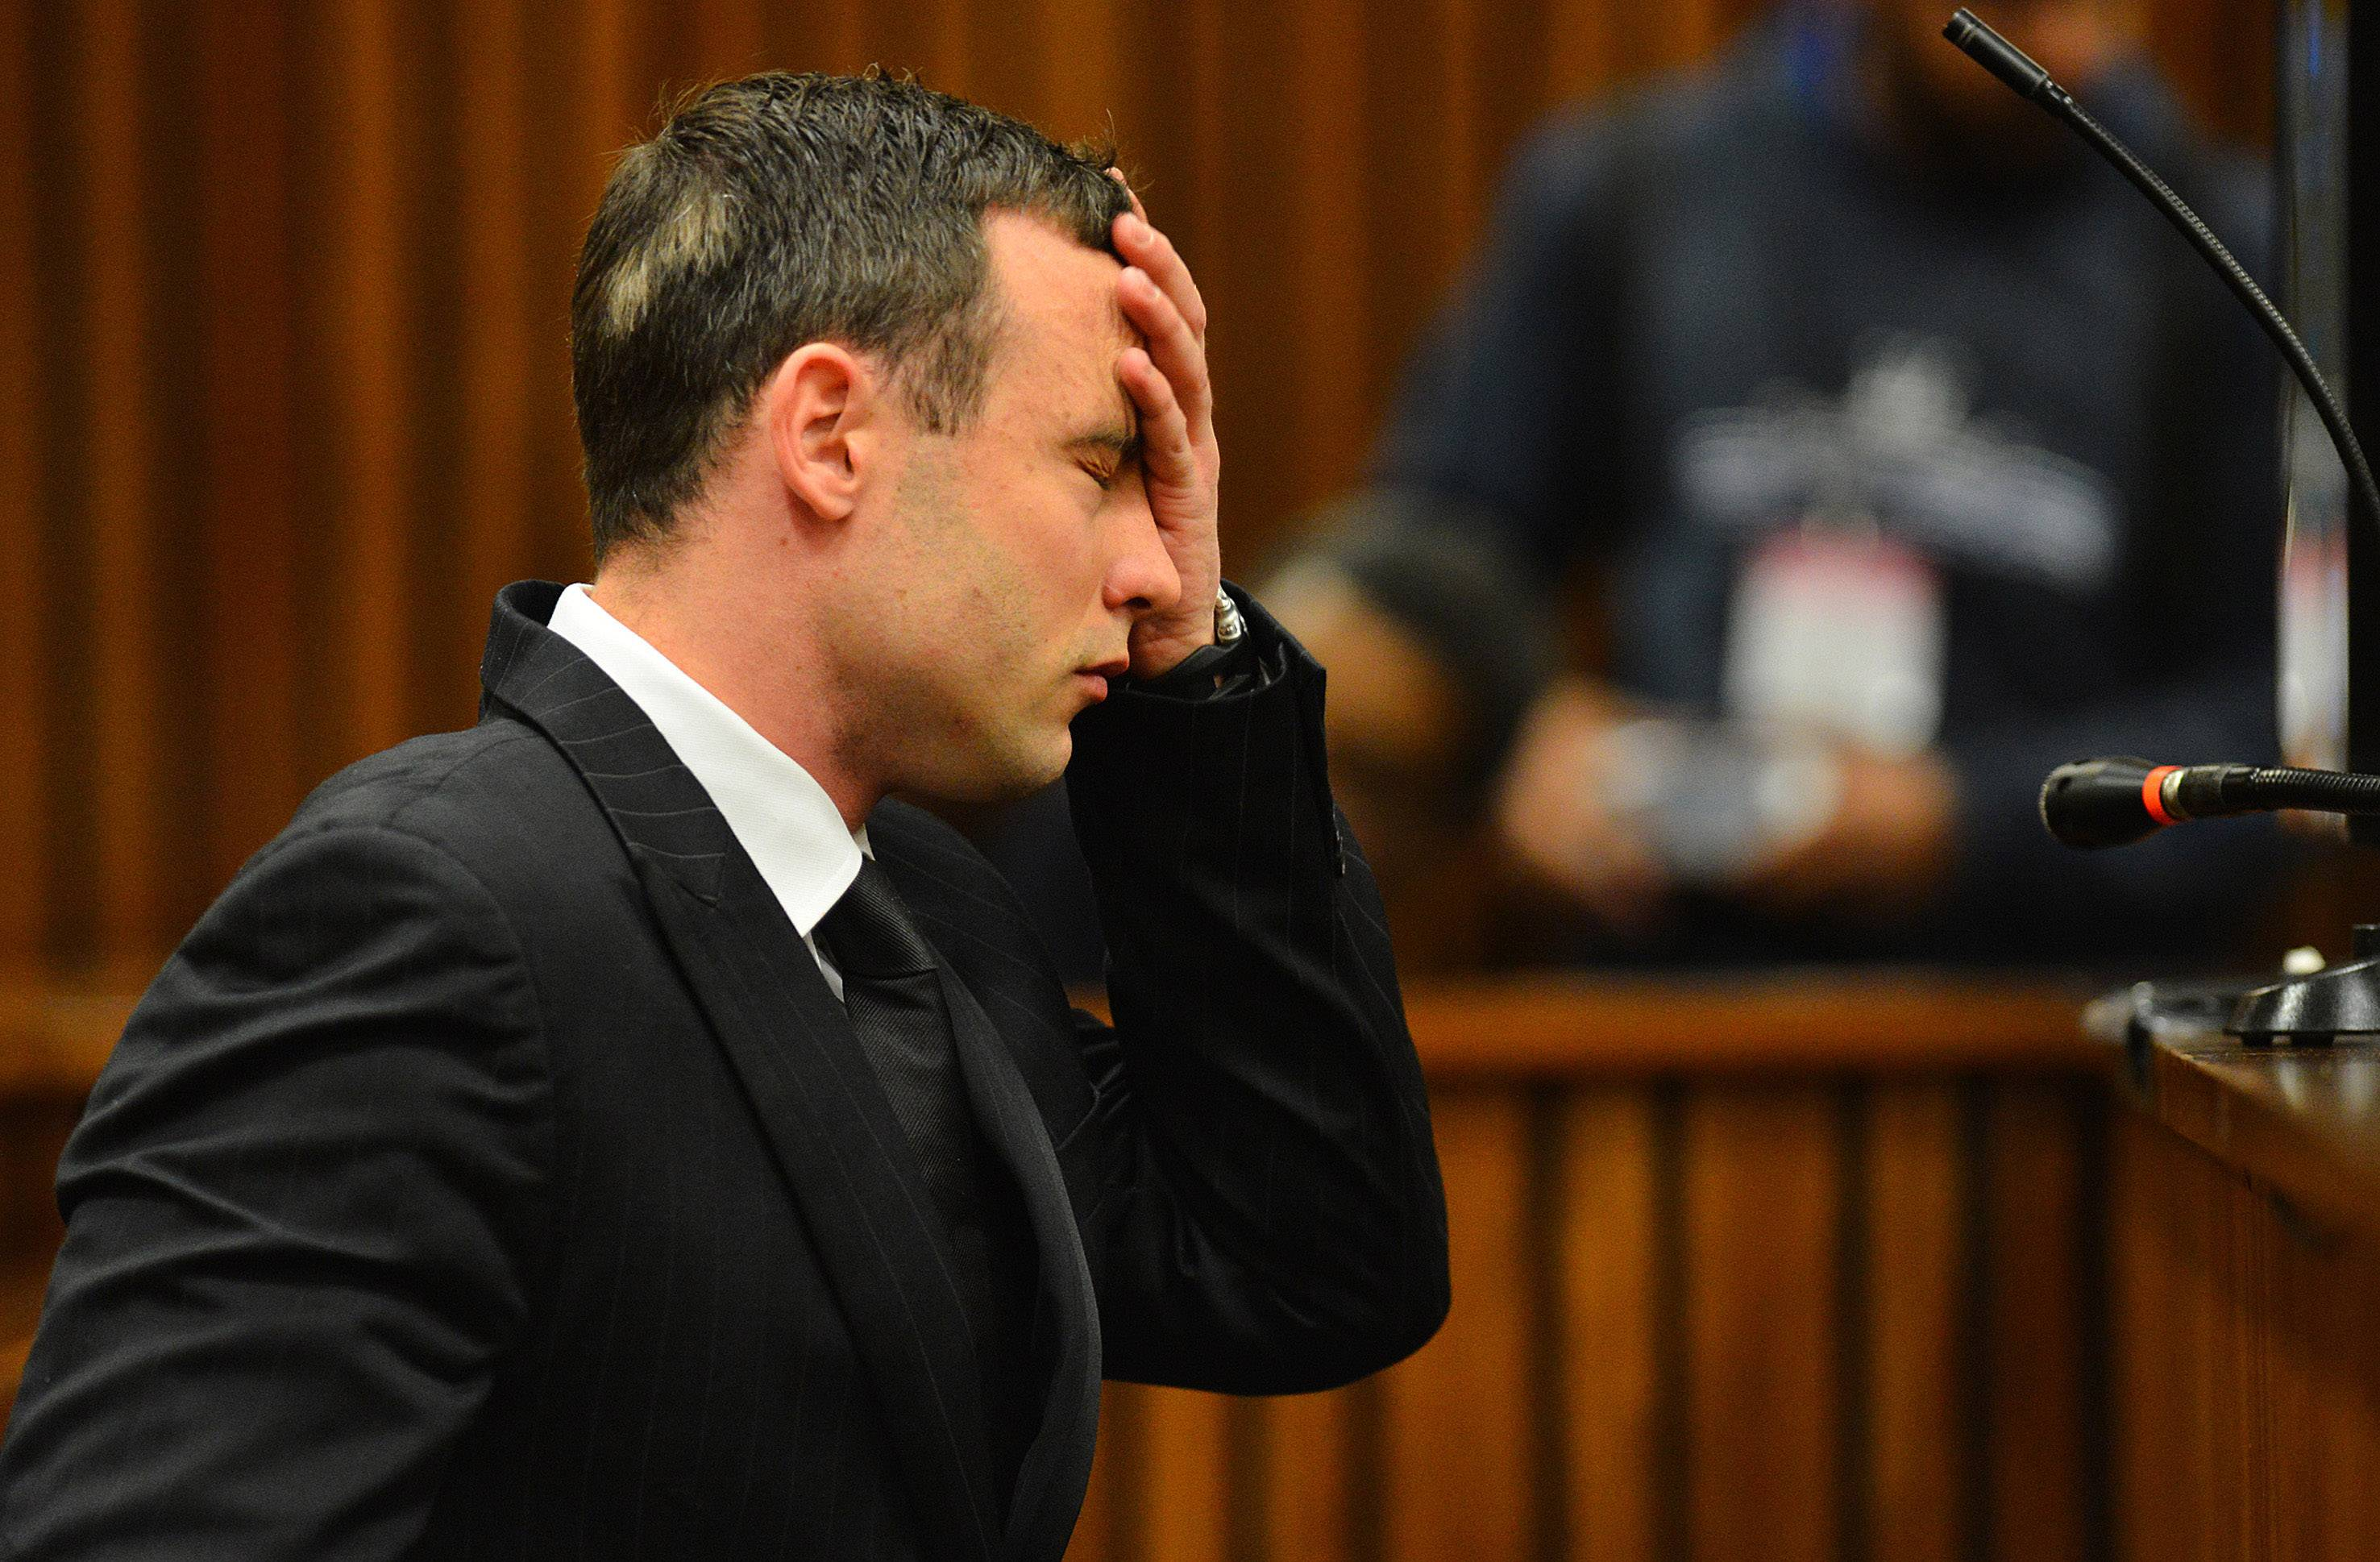 Oscar Pistorius listens to evidence in court in Pretoria, South Africa, Monday, when the murder trial of Pistorius resumed after one month during which mental health experts evaluated the athlete to determine if he has an anxiety disorder that could have influenced his actions on the night he killed girlfriend Reeva Steenkamp.